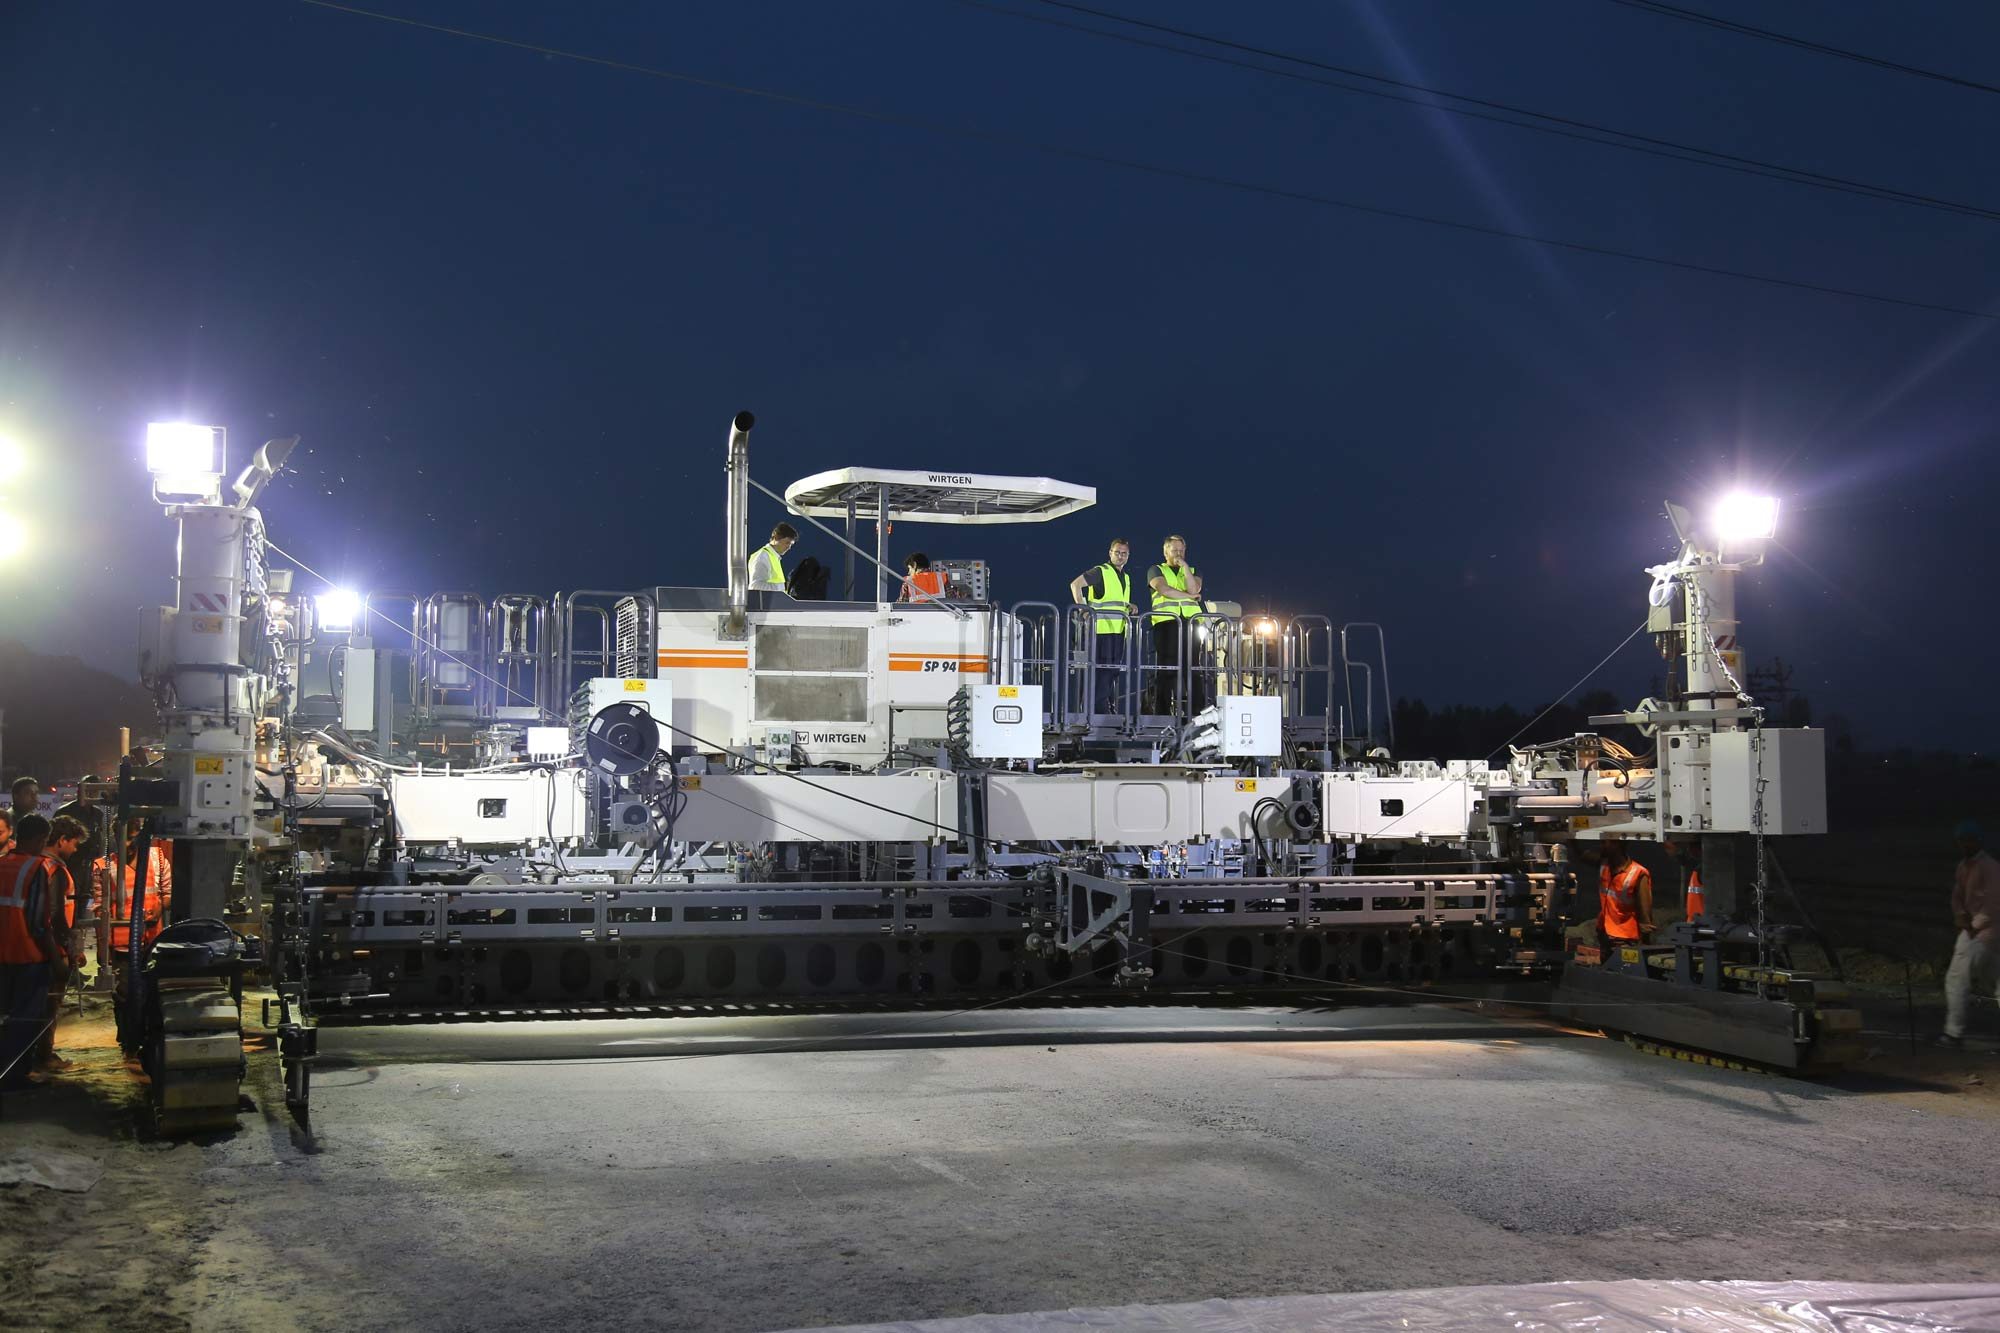 WIRTGEN: Paving high-quality concrete slabs